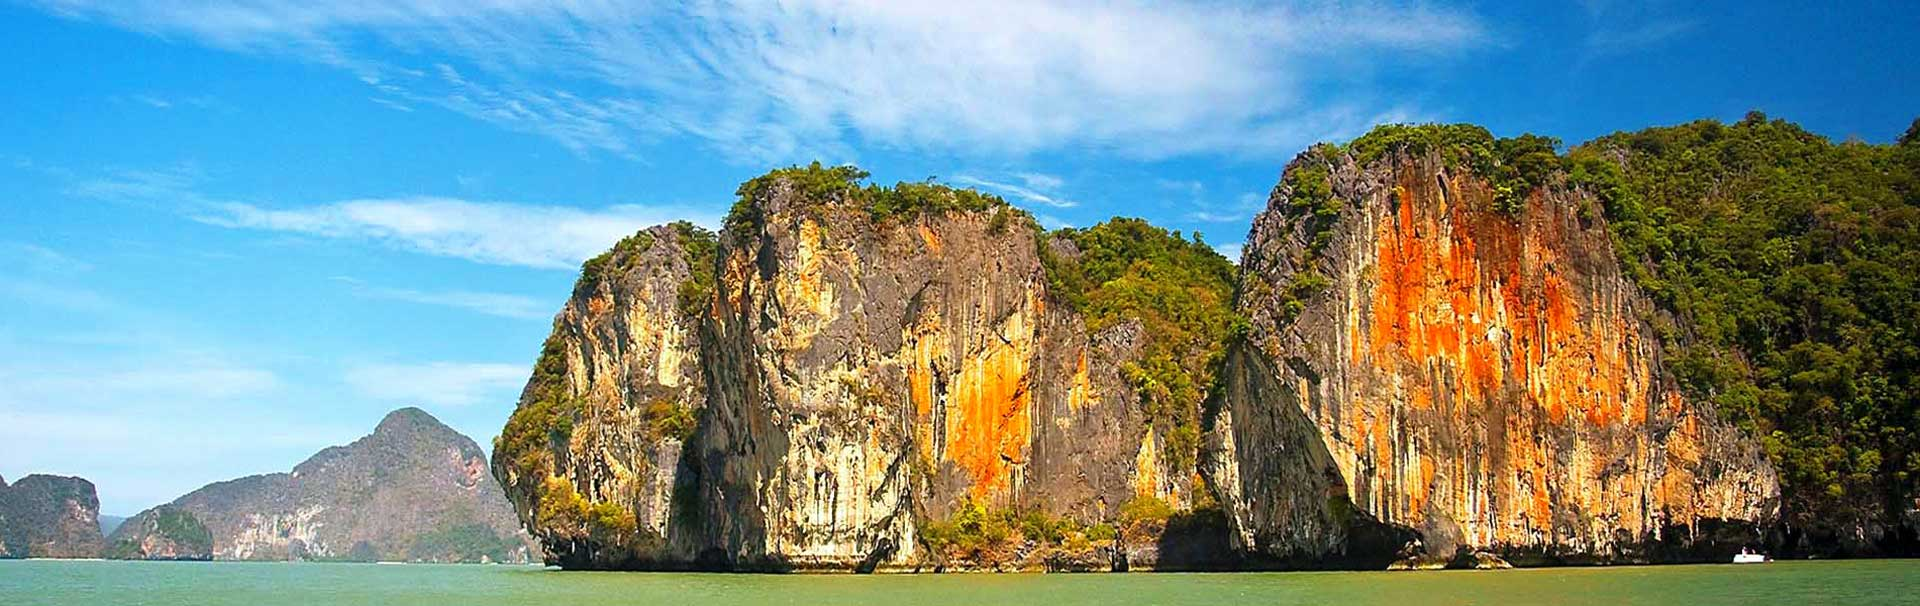 Epic views of Phang Nga Bay